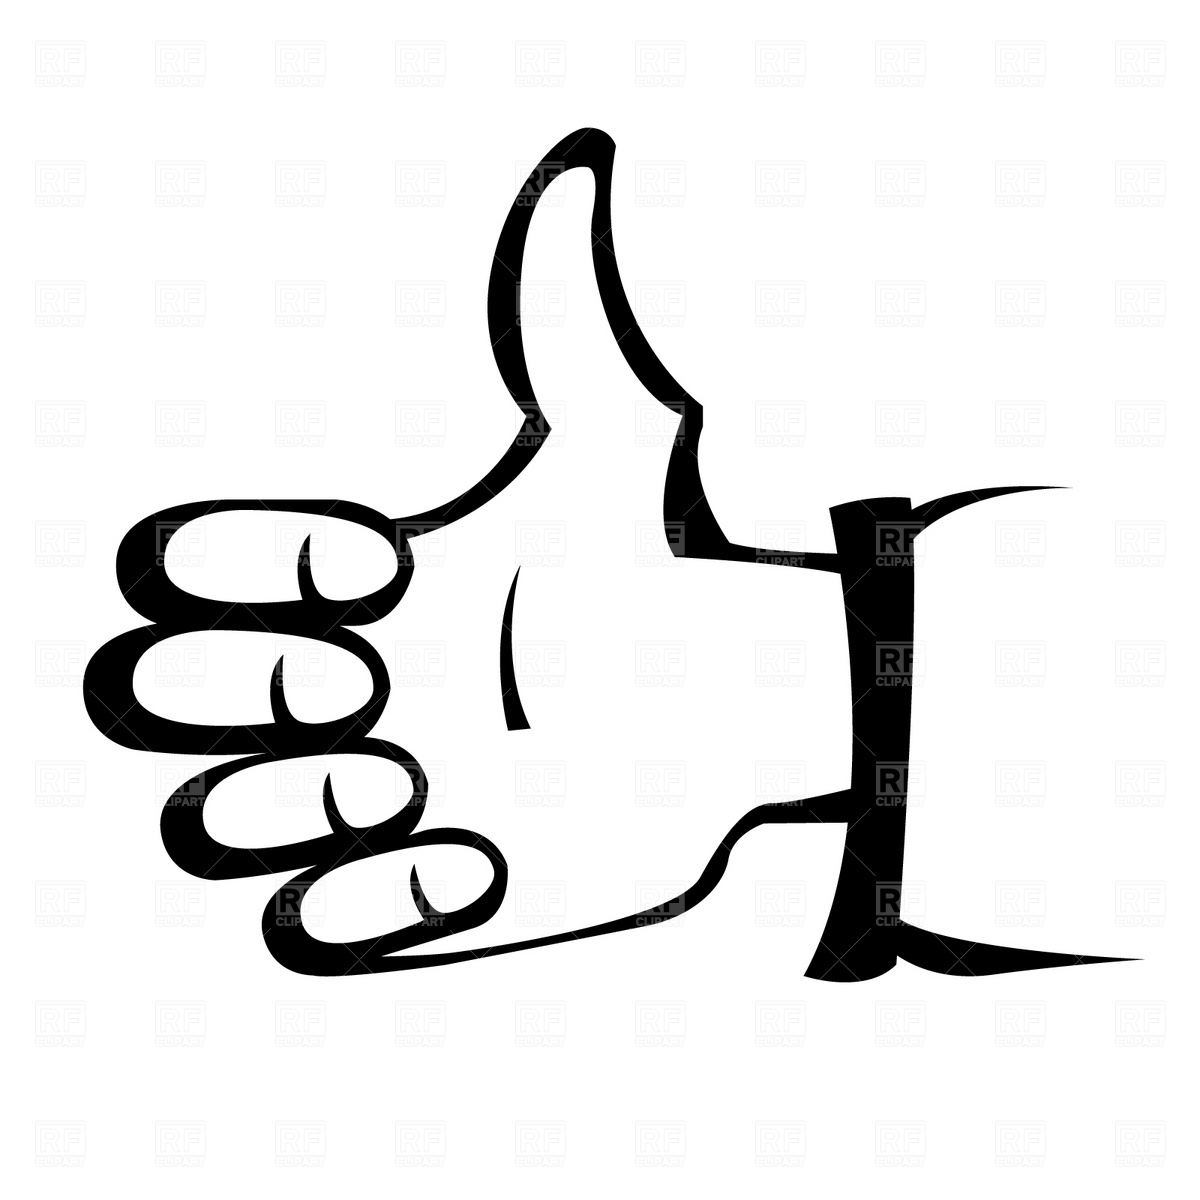 Free clipart thumbs up sign.